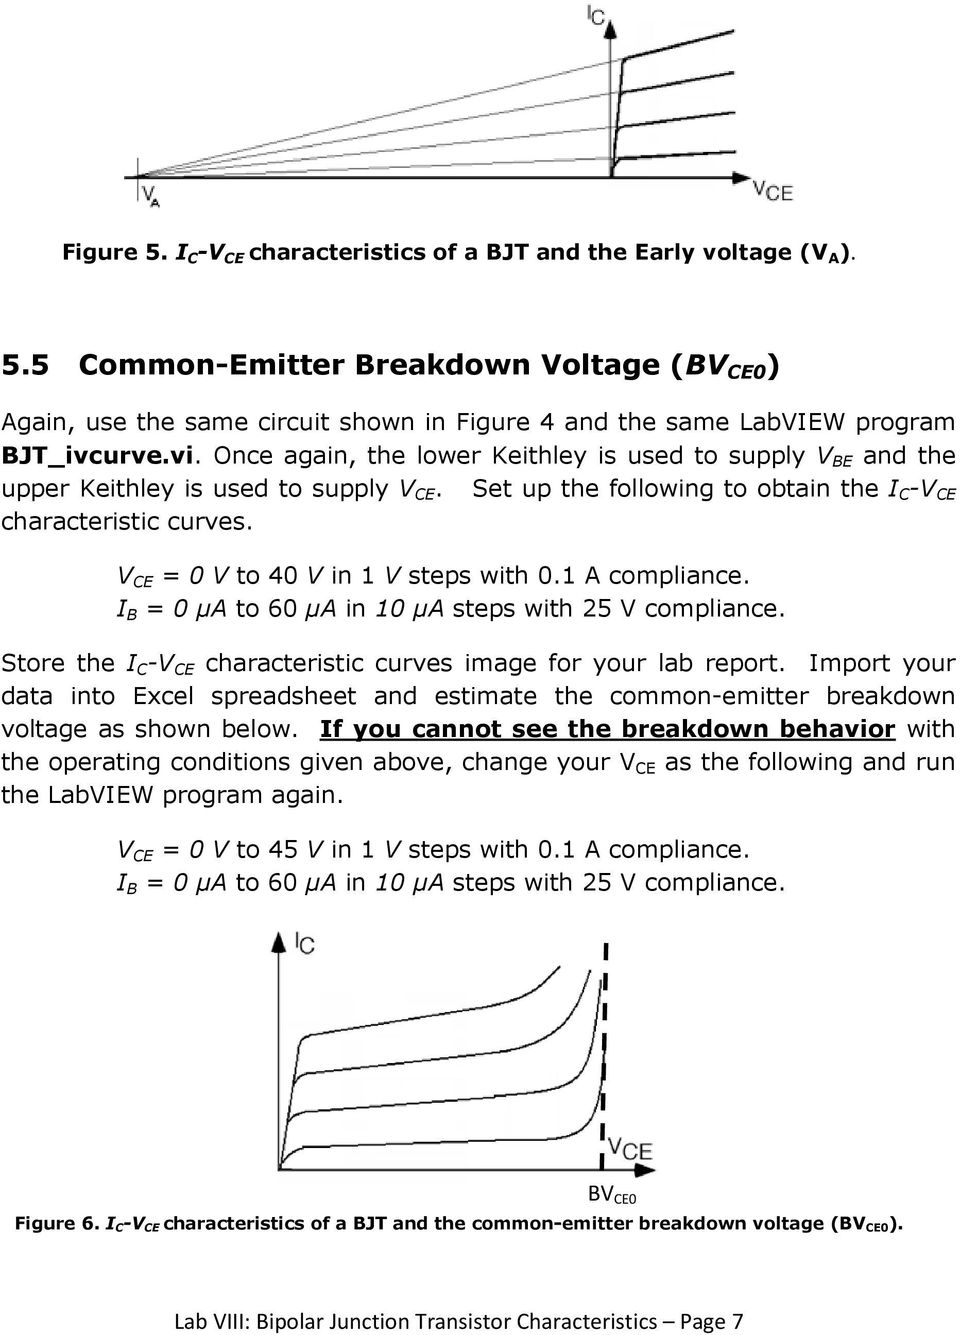 Lab Viii Bipolar Junction Transistor Characteristics Pdf Figure 5 Amplifier Schematic V Ce 0 To 40 In 1 Steps With 01 A Compliance